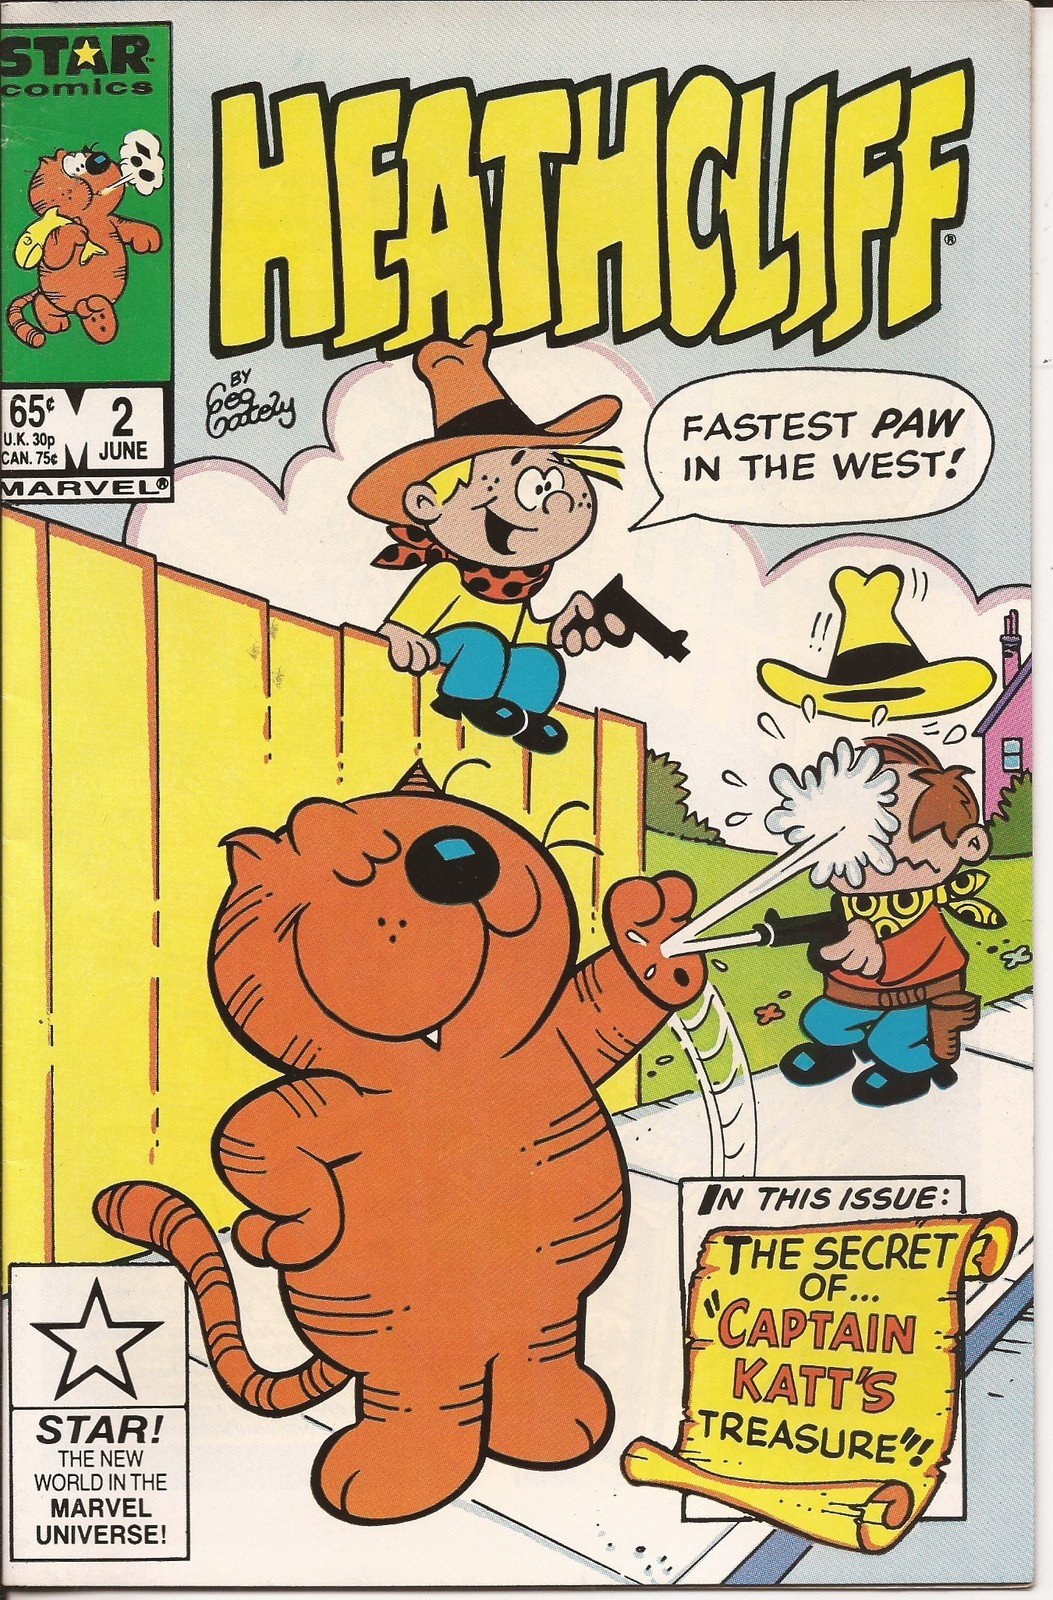 Marvel Heathcliff #2 Secret Of Captain Katt's Treasure Funny Animal Hijinks